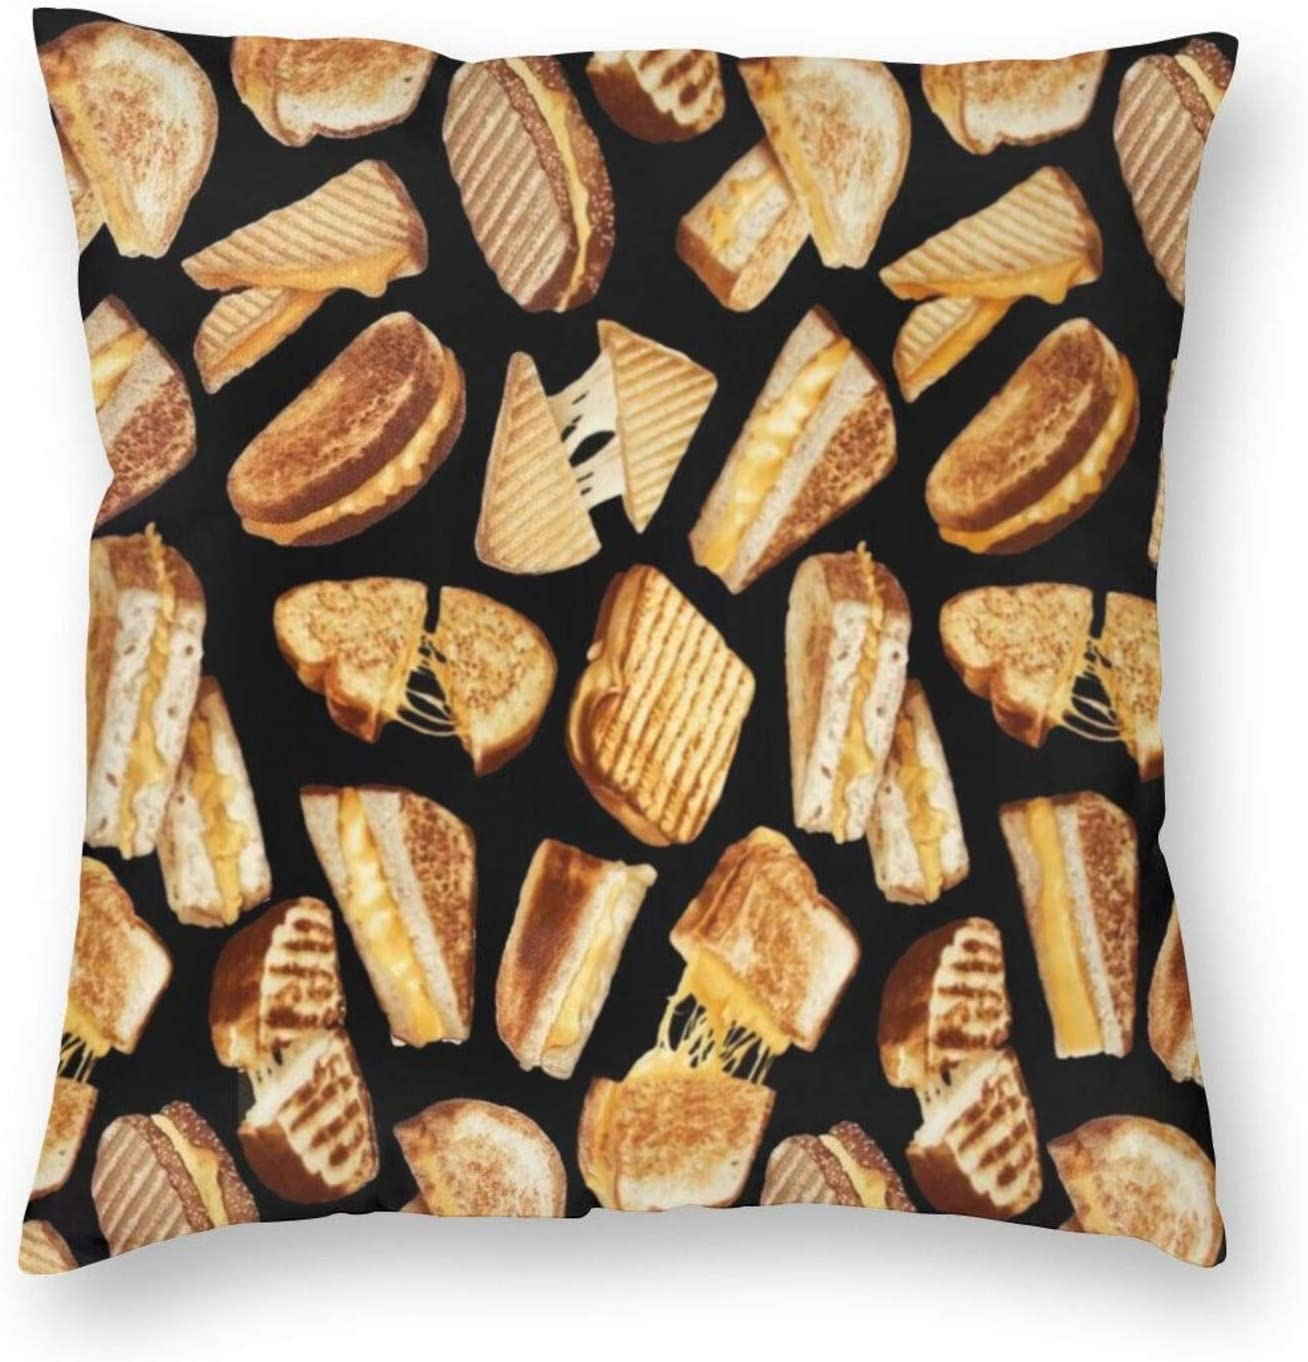 antcreptson Grilled Cheese Pillow Polyester Decor Hidden Zipper Print On Pillowcases Double-Sided Digital Printing Couch Pillowcase Square Sofa Home Decor 18 X 18 Inch (45 X 45cm)